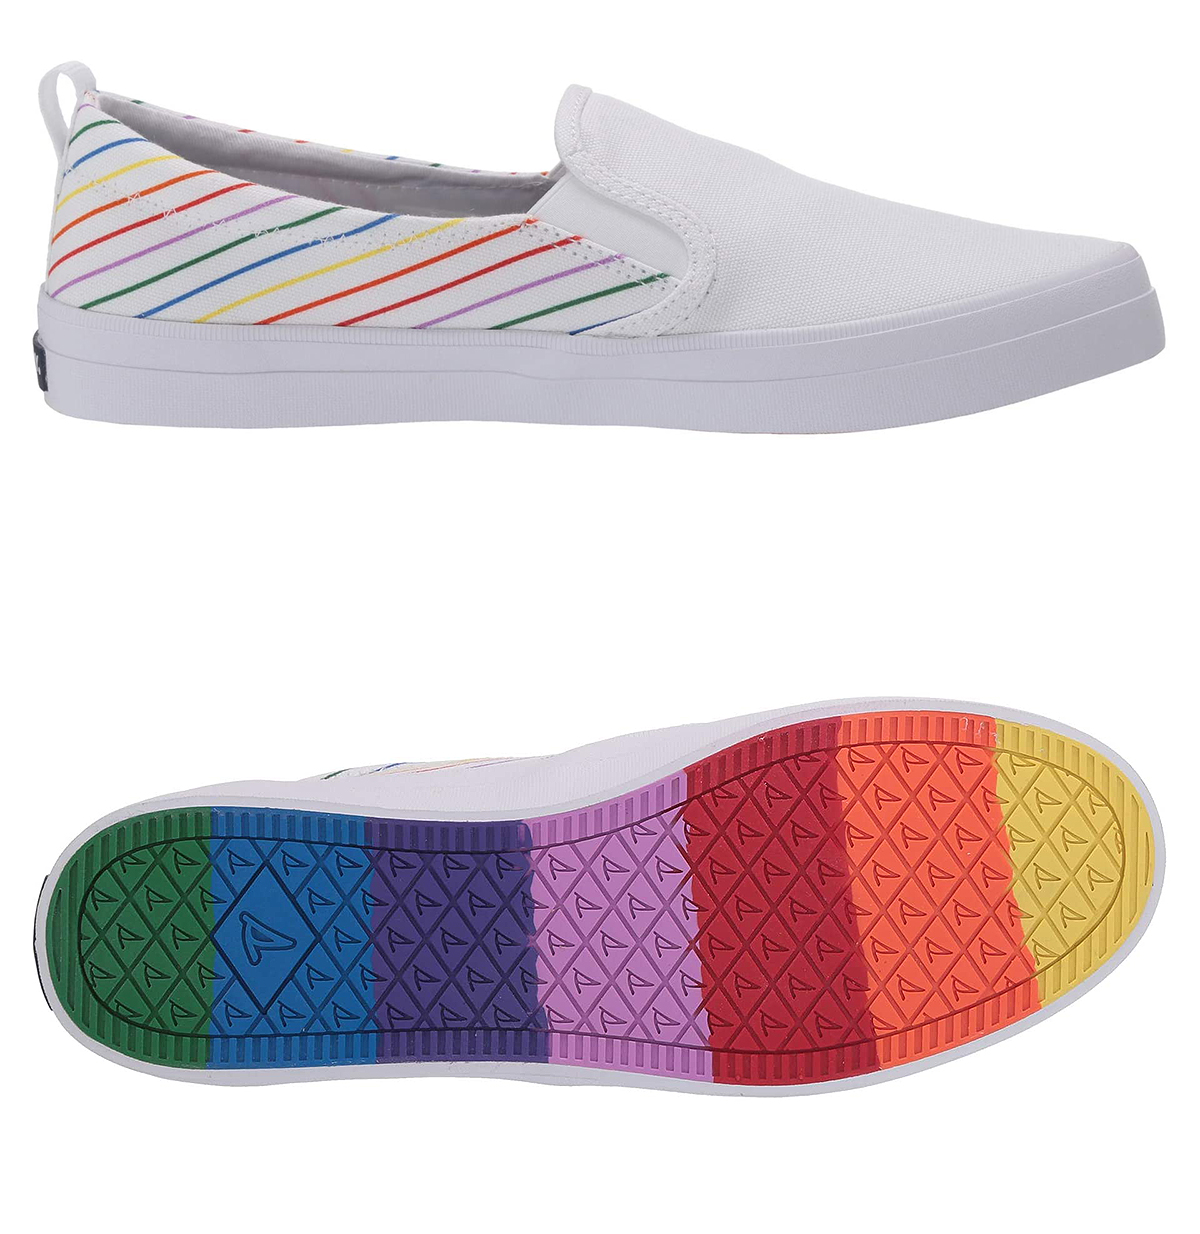 Sperry Crest Twin Gore Pride Slip-Ons